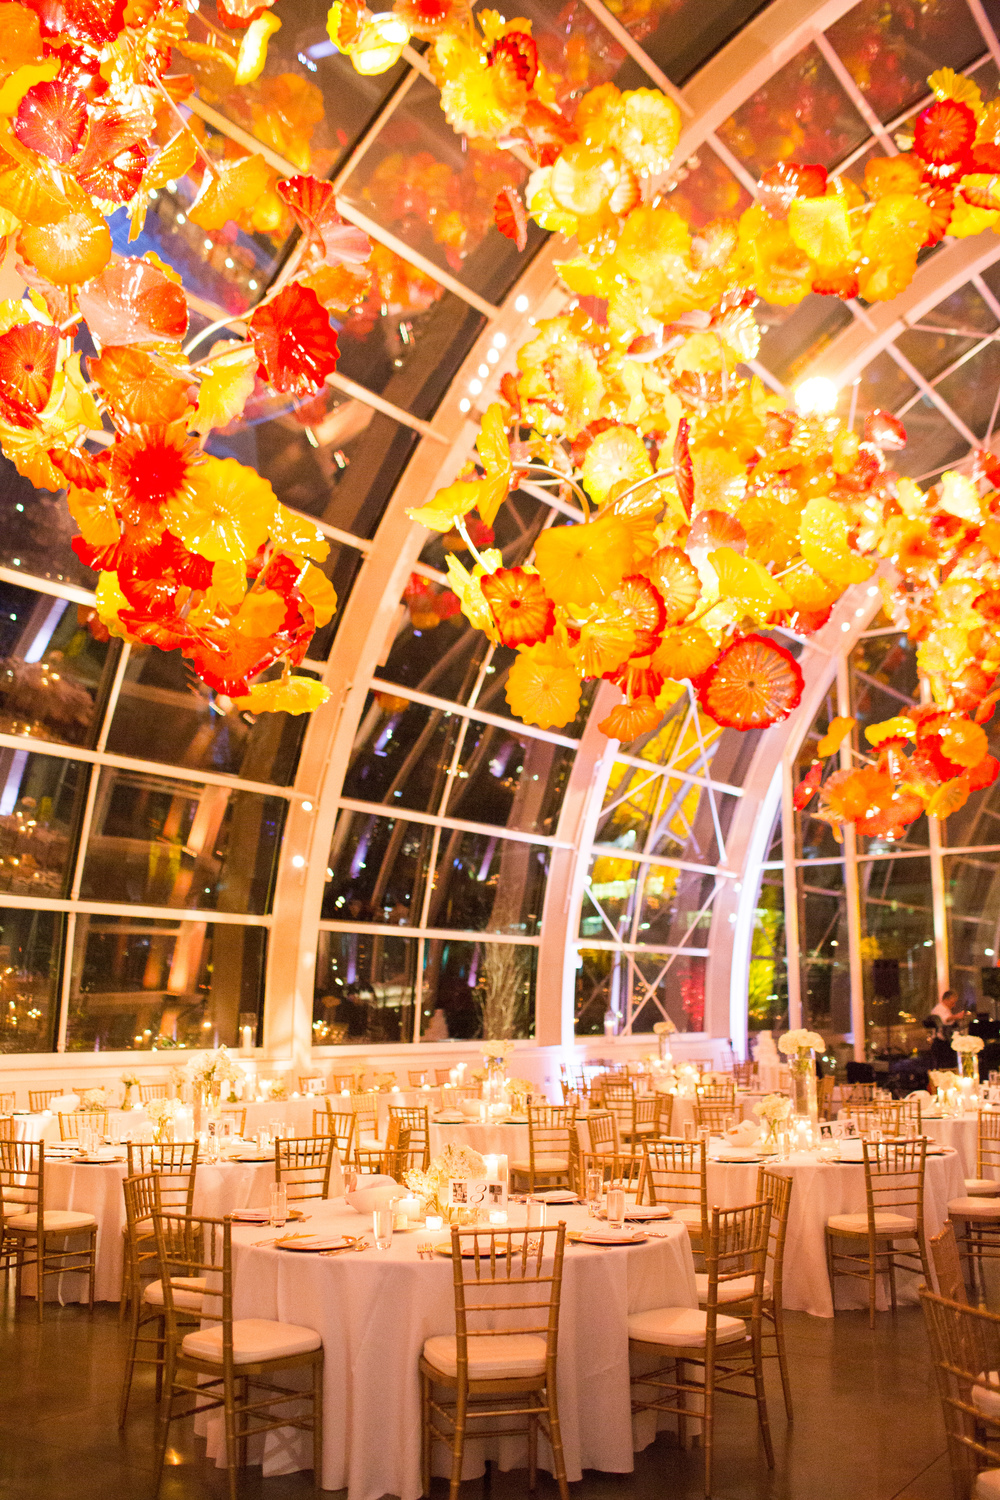 Chihuly Glass and Garden Wedding | Seattle Wedding Venue | New Creations Wedding Design and Coordination